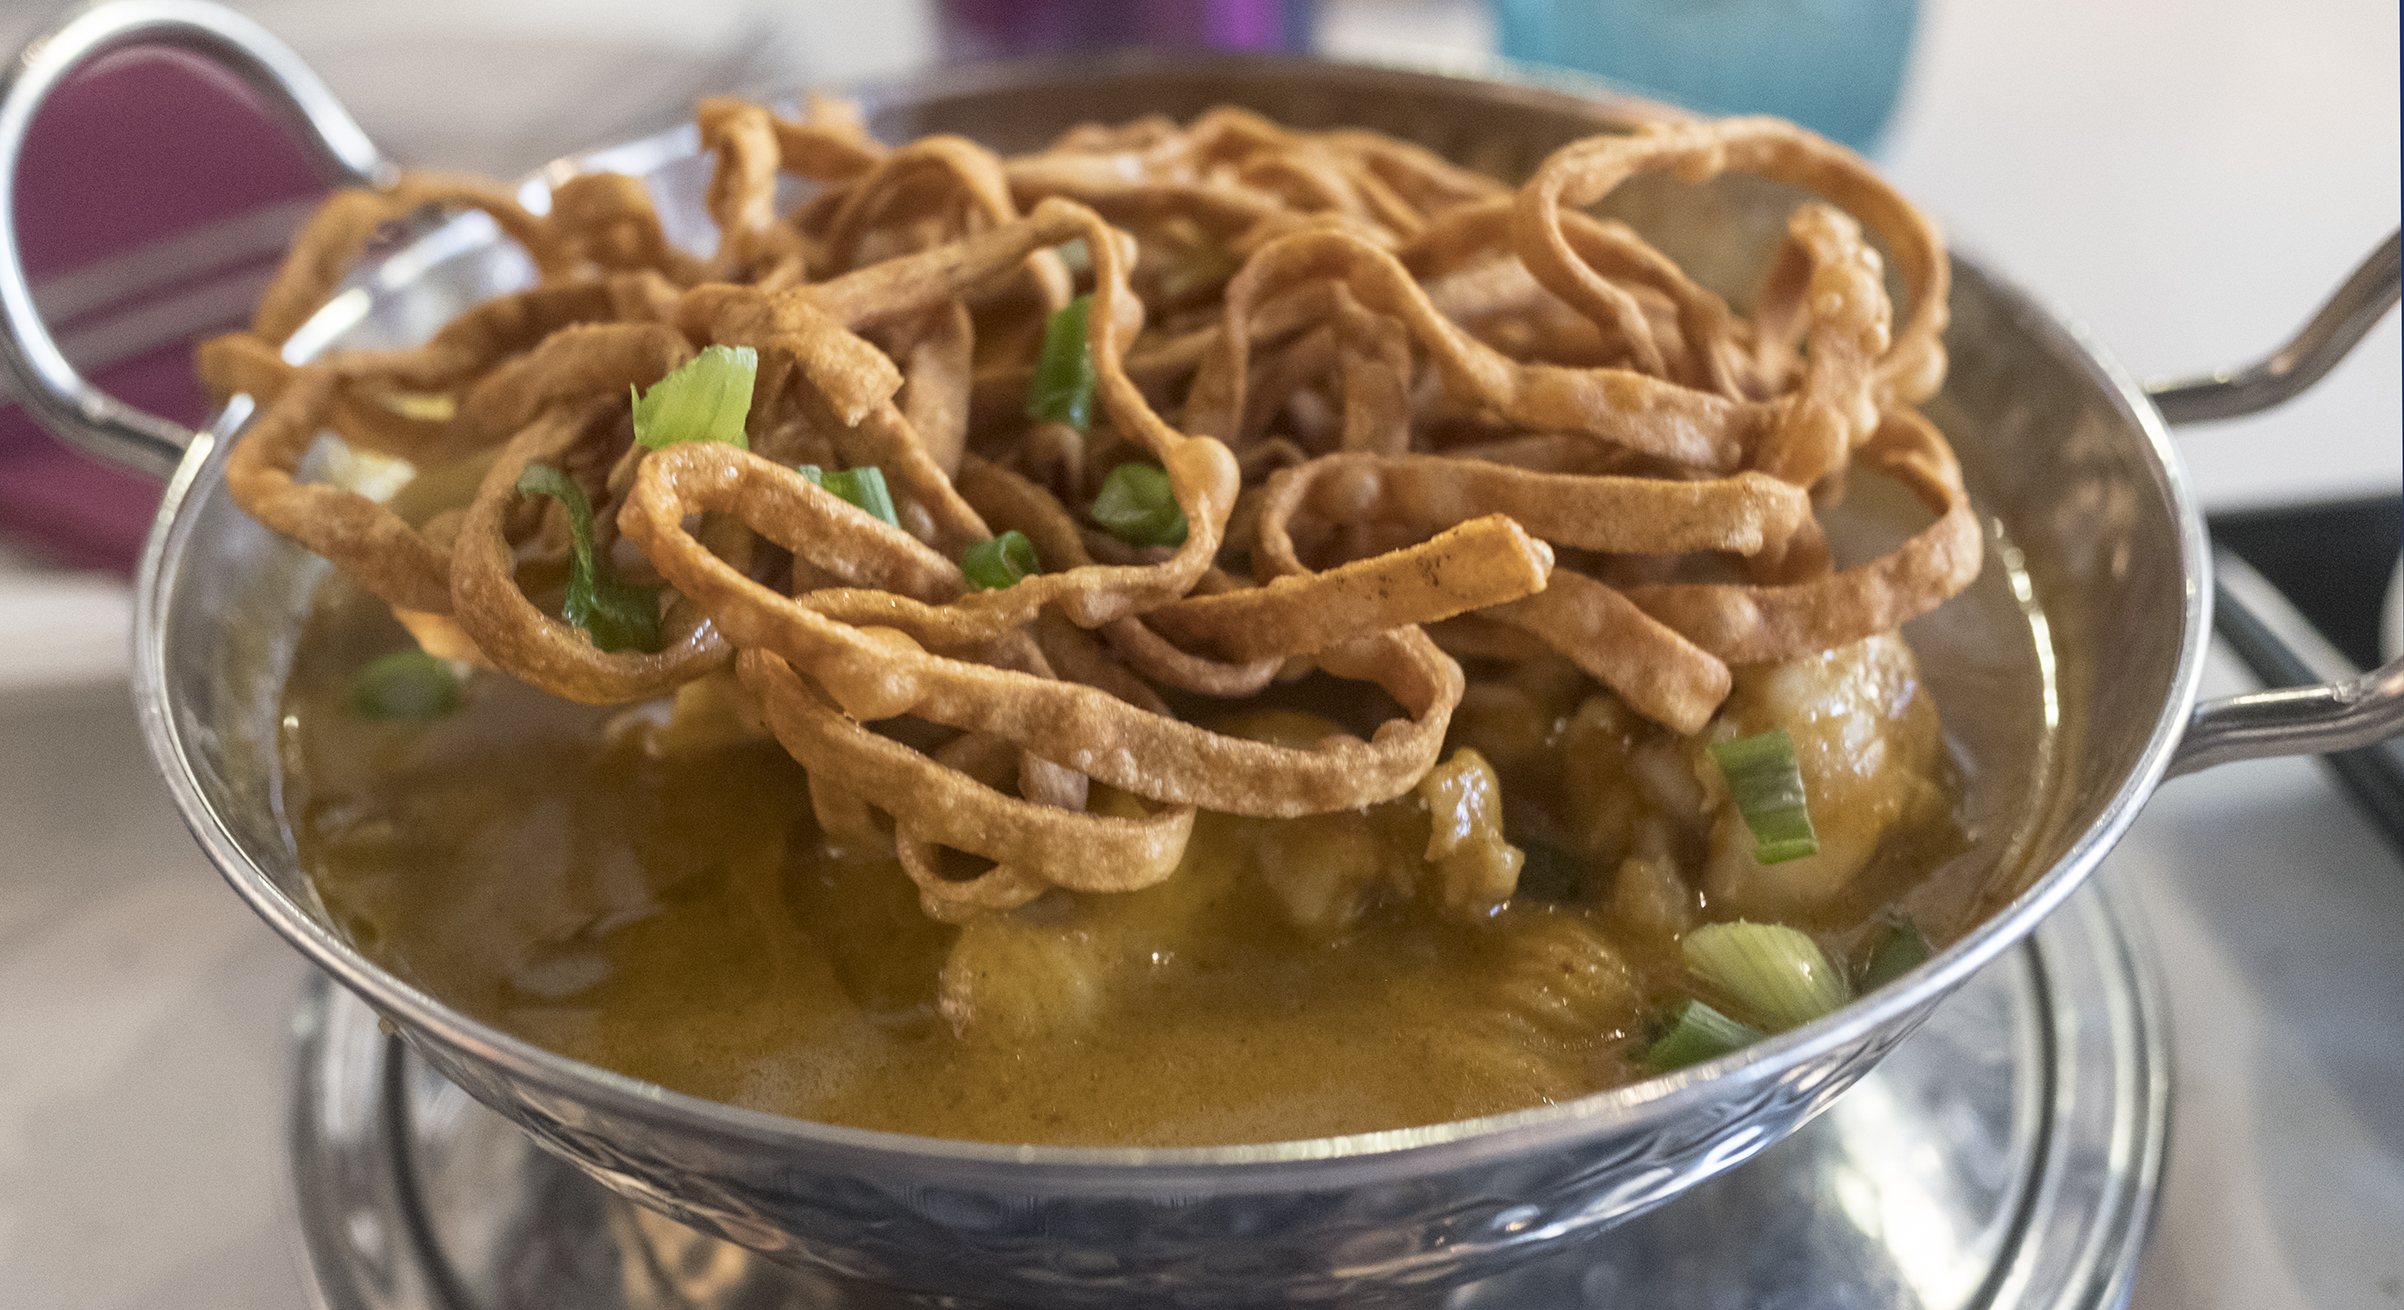 Khao soi: crispy noodles add to the fun of a soupy noodle curry dish